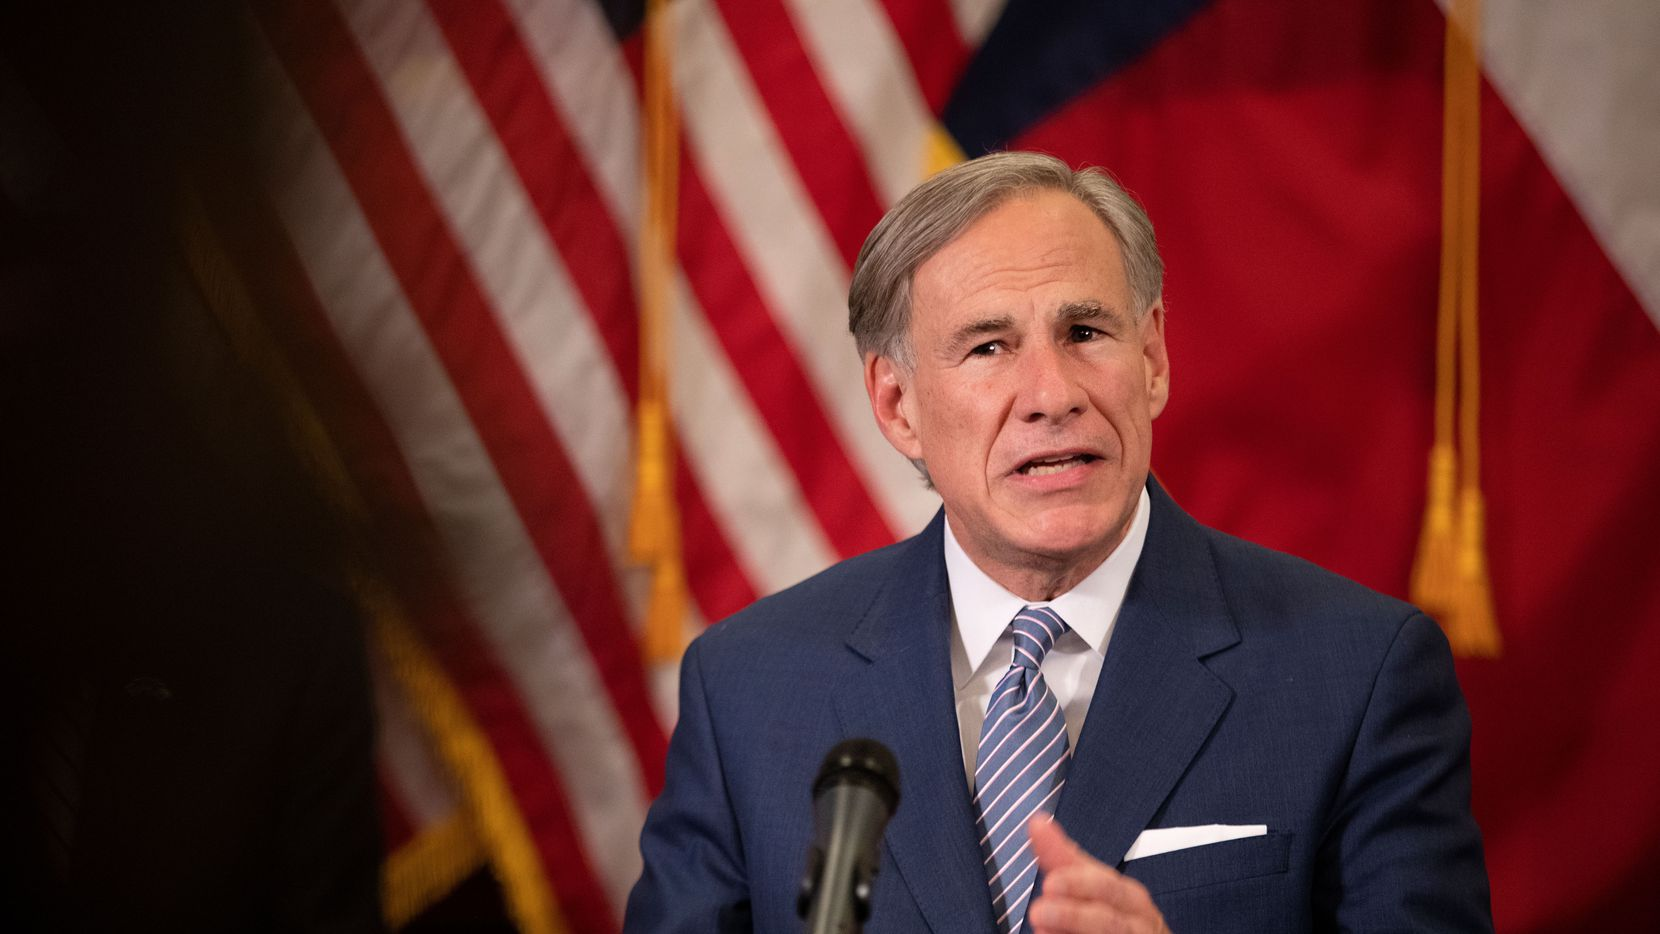 Gov. Greg Abbott announced a strike force in charge of laying steps to re-open the Texas economy in the wake of shutdowns to flatten the curve of the new coronavirus, at a news conference in the capitol on April 17, 2020 in Austin.